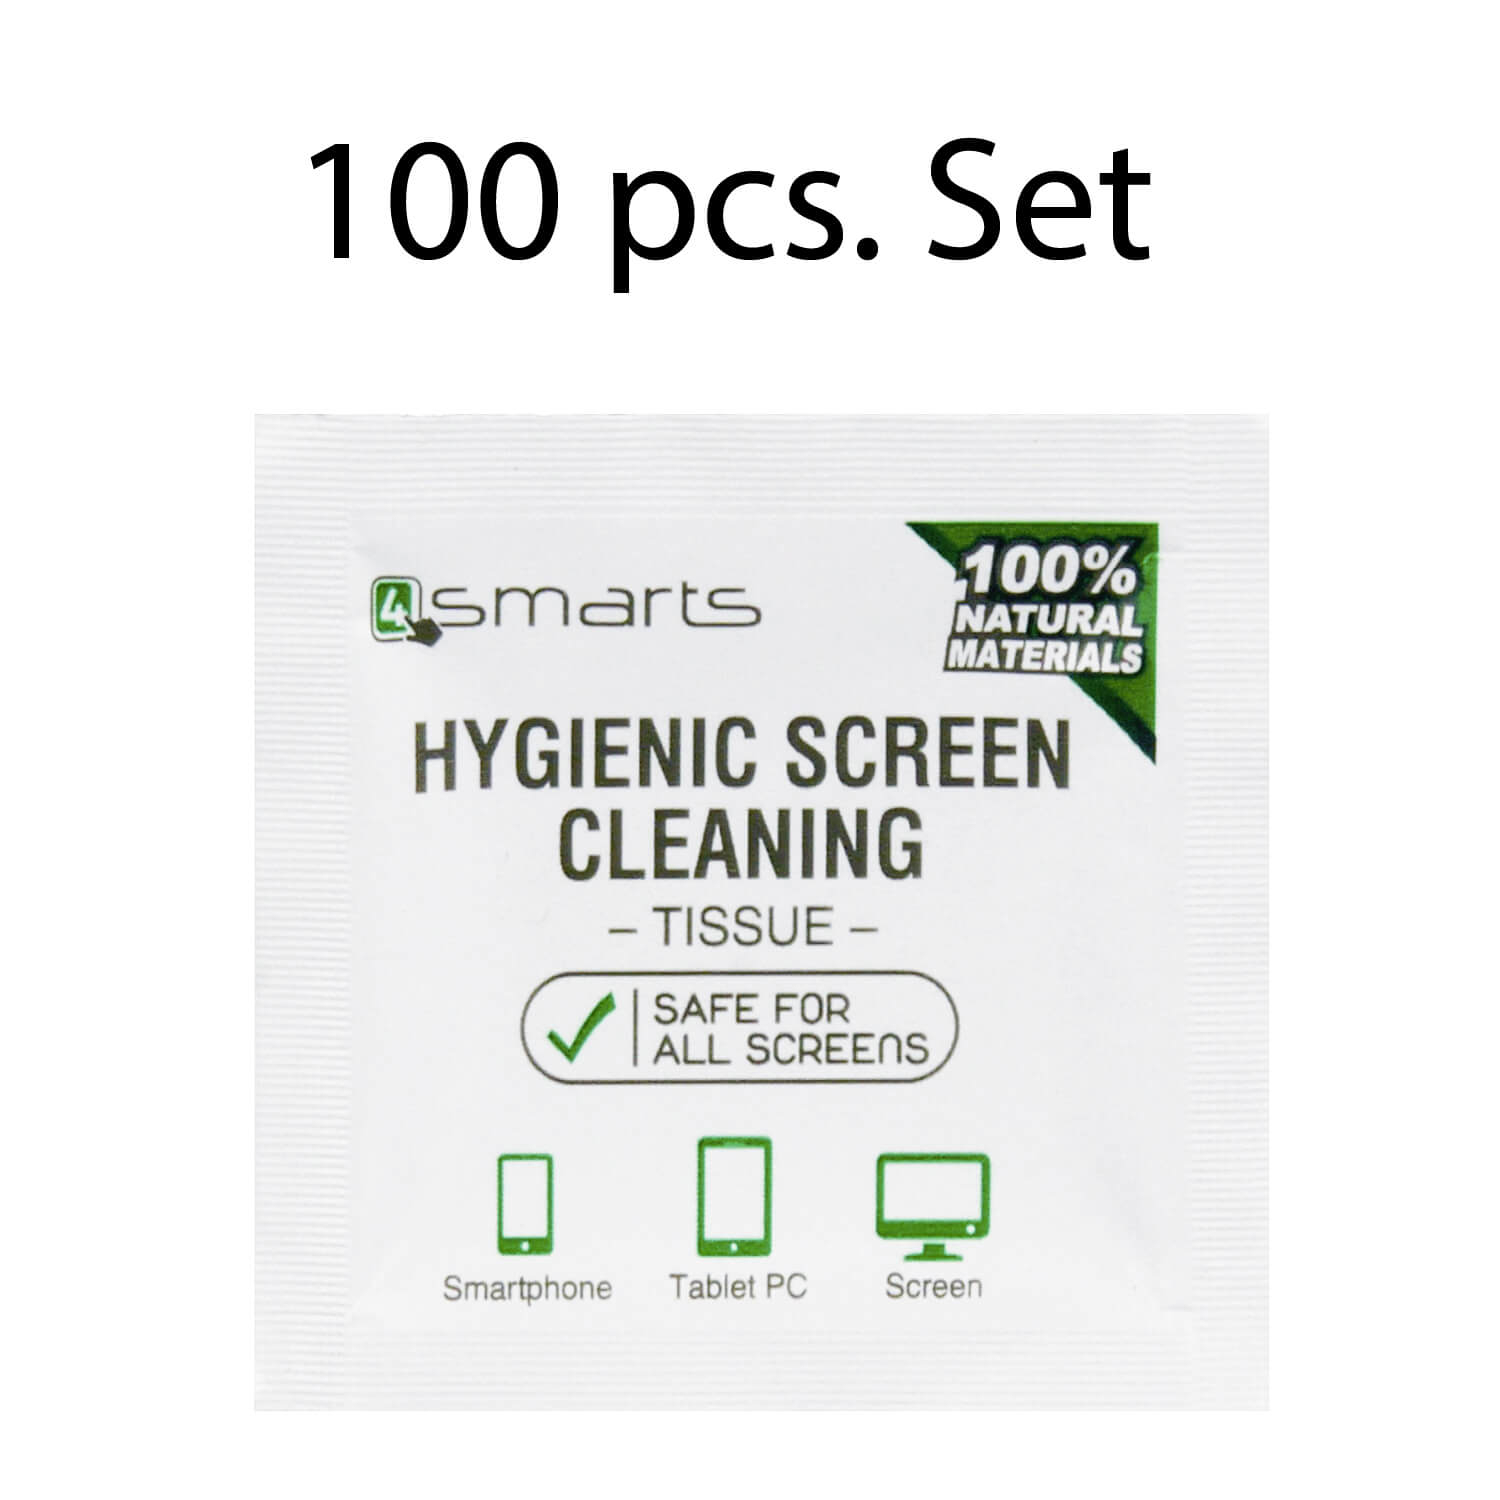 4smarts Anti Bacterial Screen Cleaning Wipes Extra Clean 100 pcs.